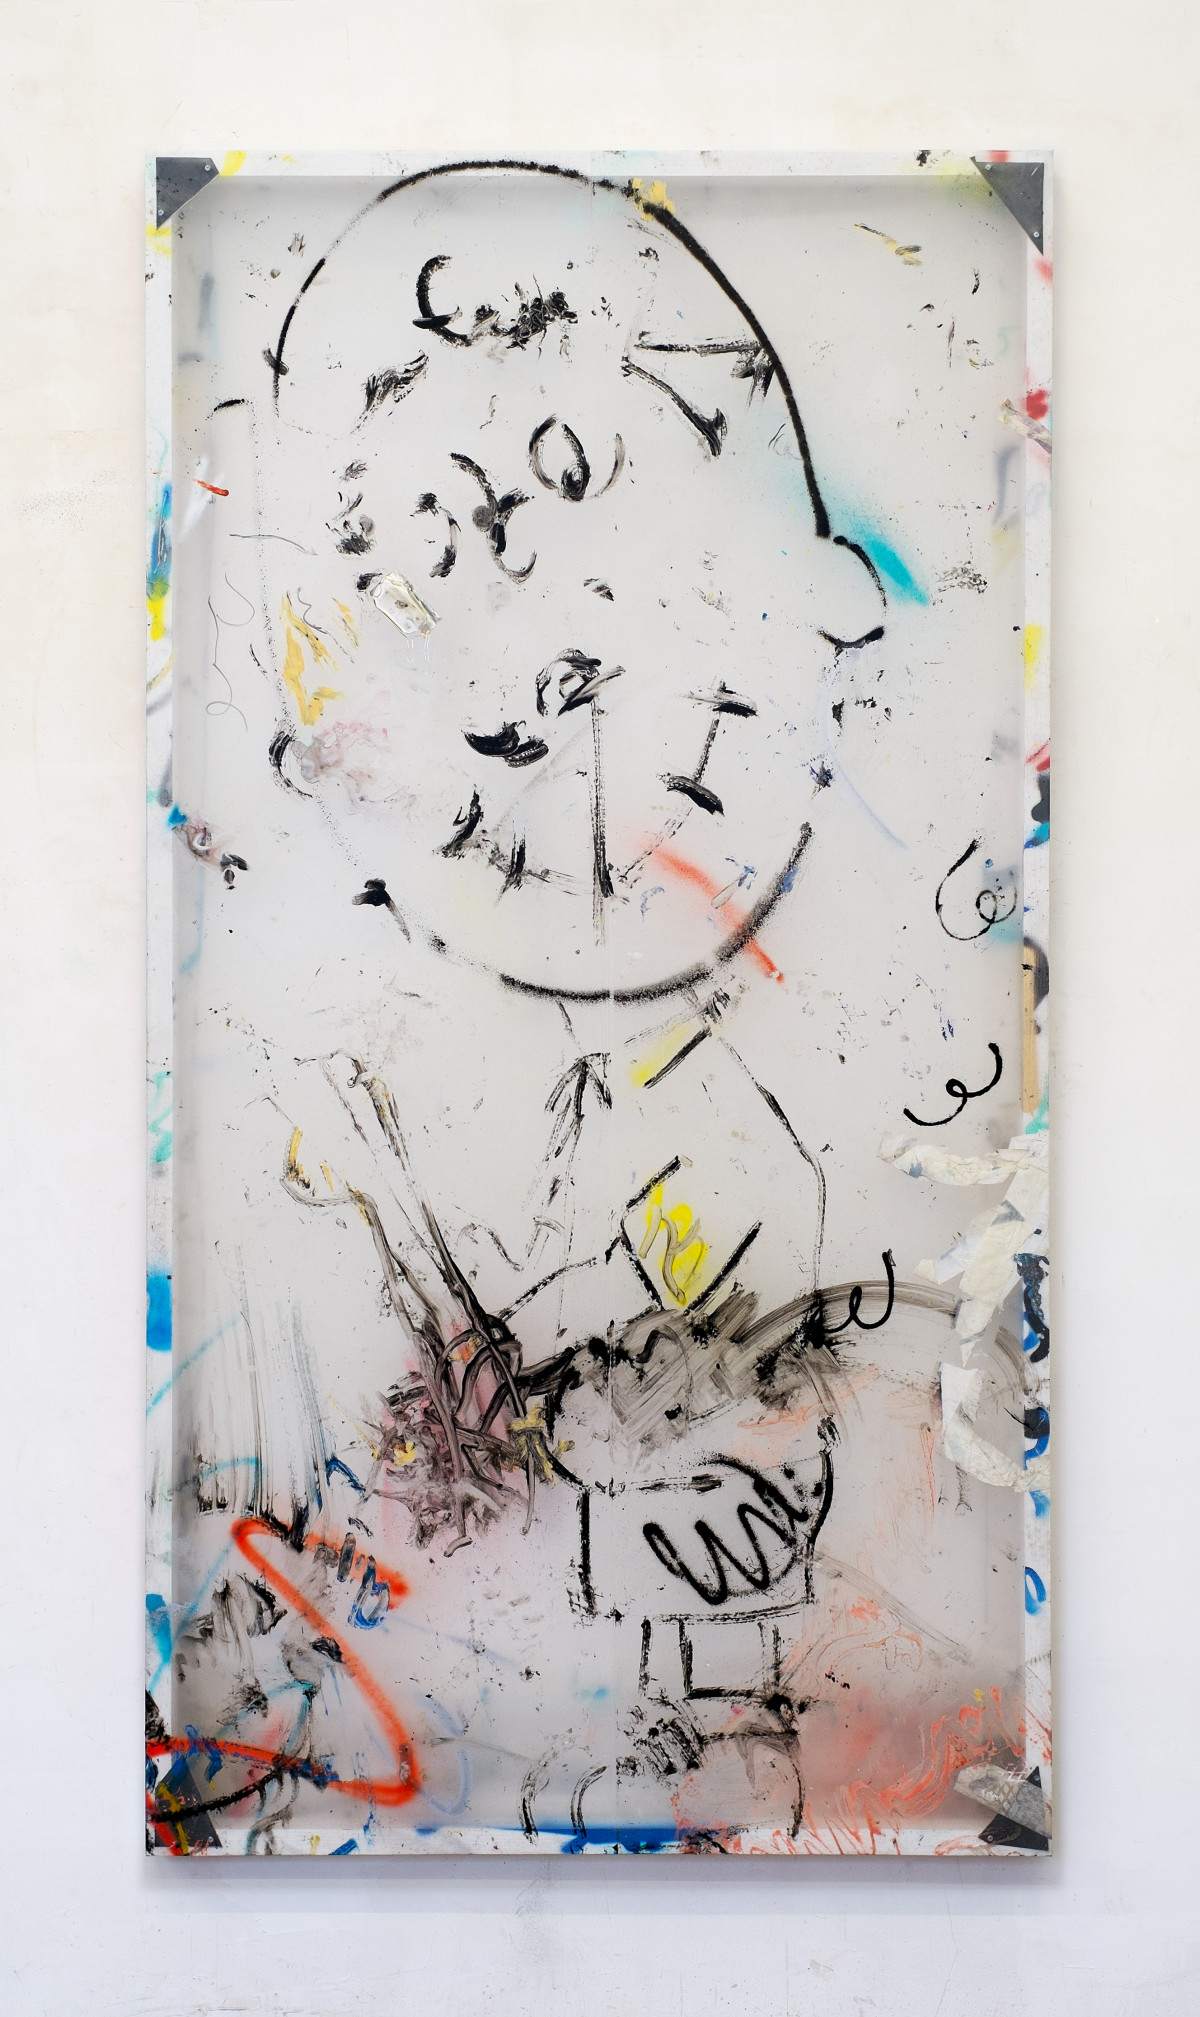 Antoine Donzeaud_2015_Untitled PE (thrive throve thriven)_200x106x6cm_wood, steel, polythene, oil stick, acrylic, aerosol paint, tape, marker, aluminium, resin_2015-ad-15